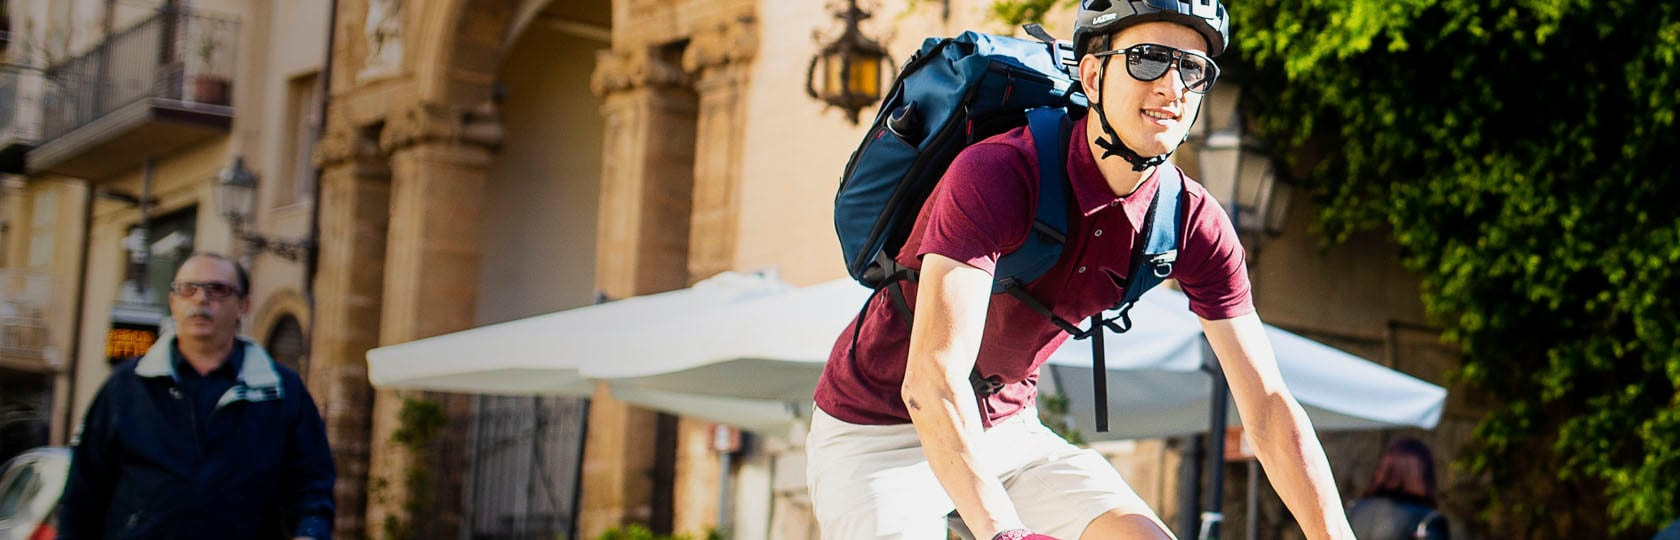 19SS_apparel_explorer_ridingstyle_hero-image